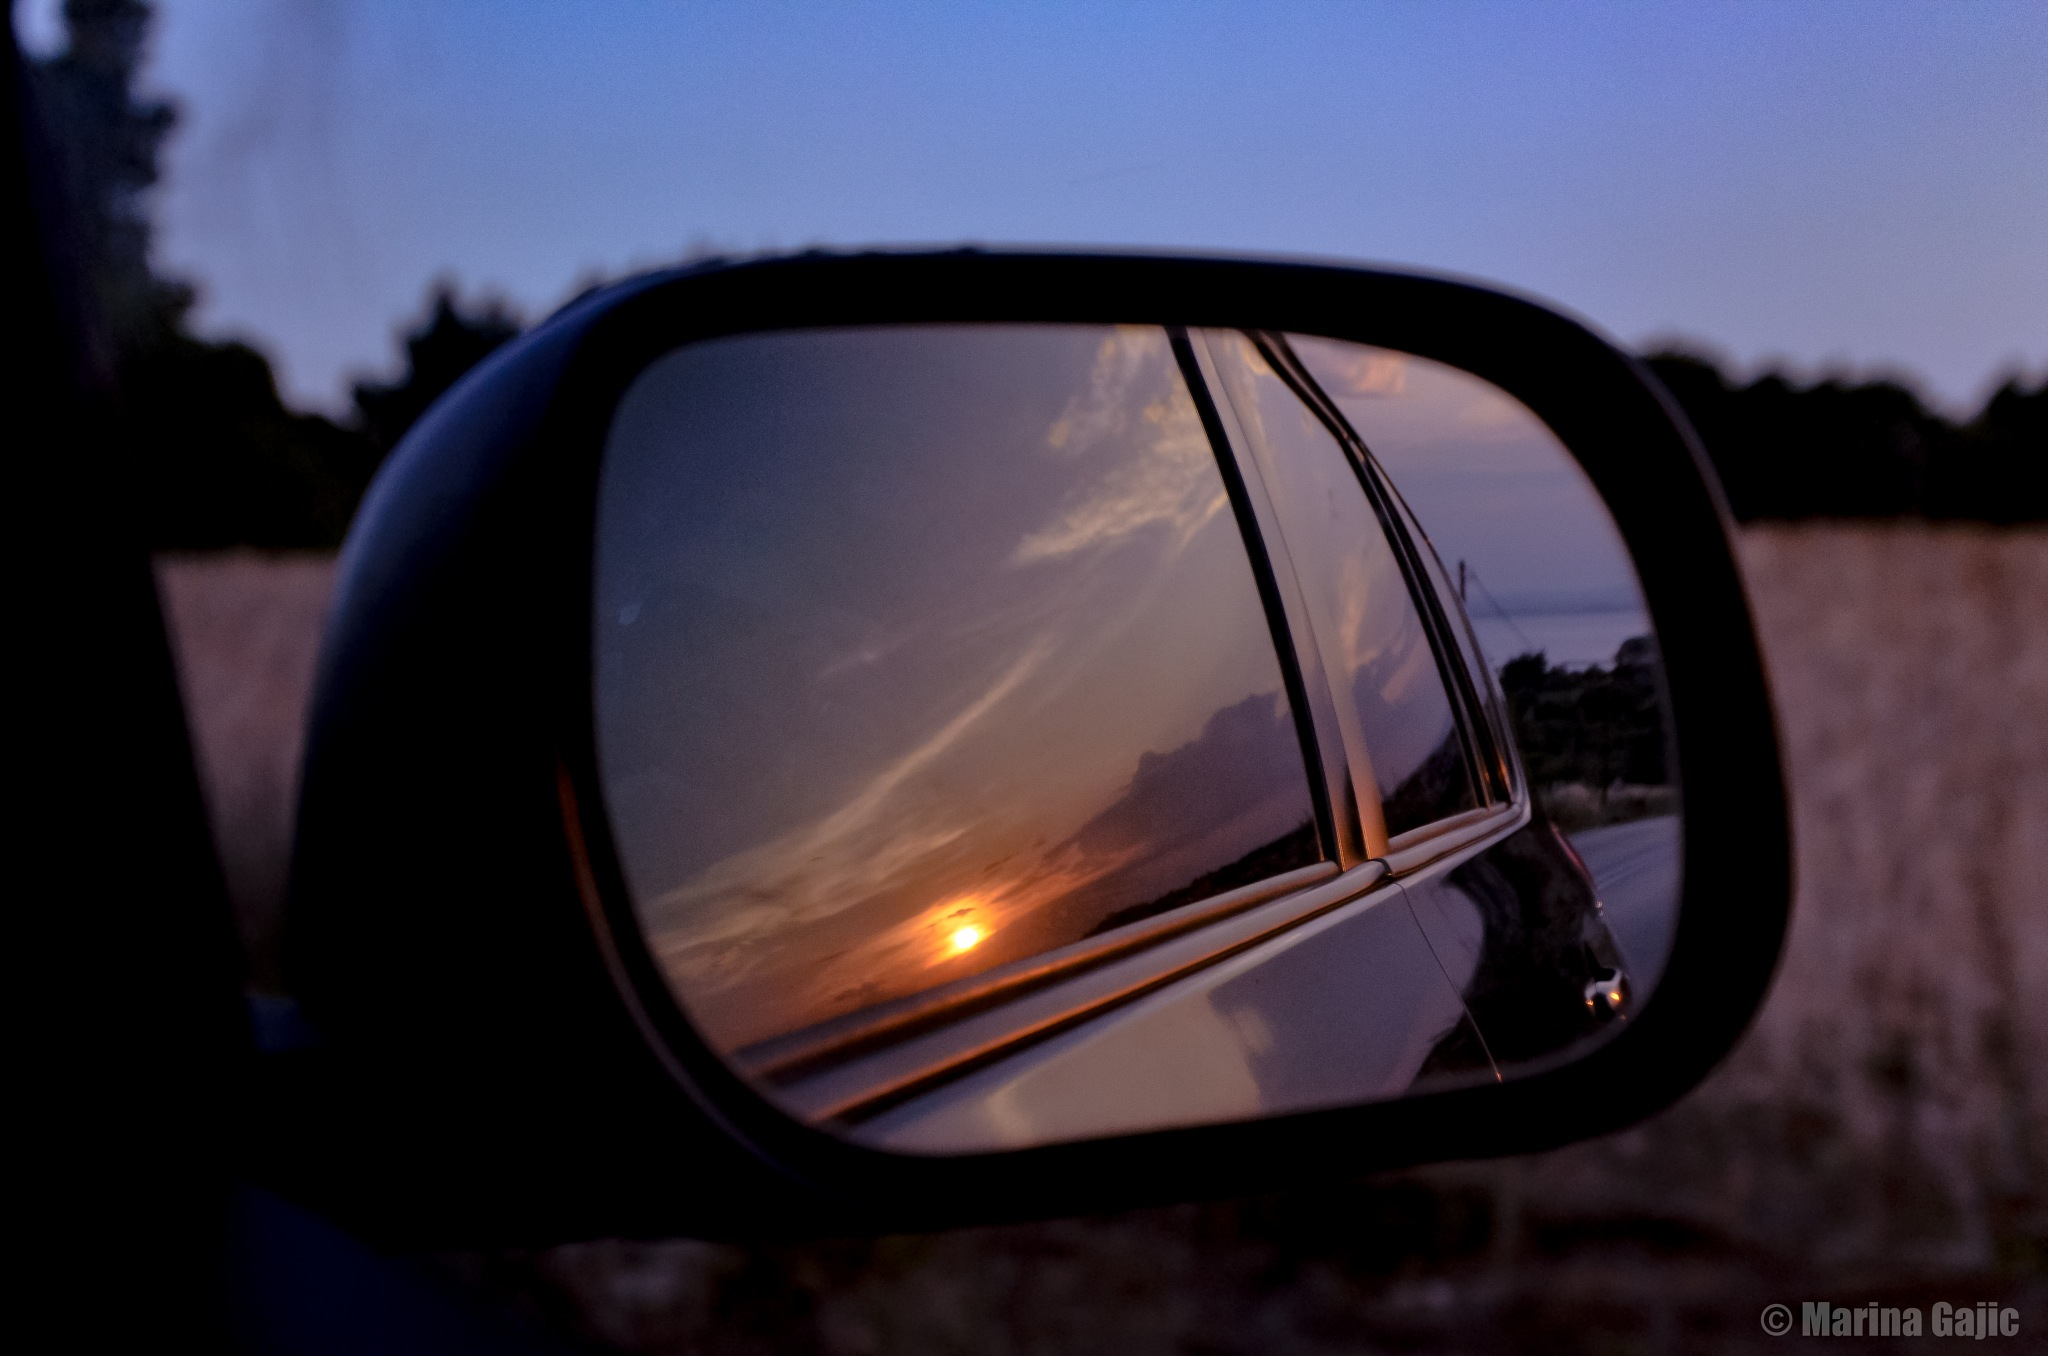 Sunset from car by Marina Gajic